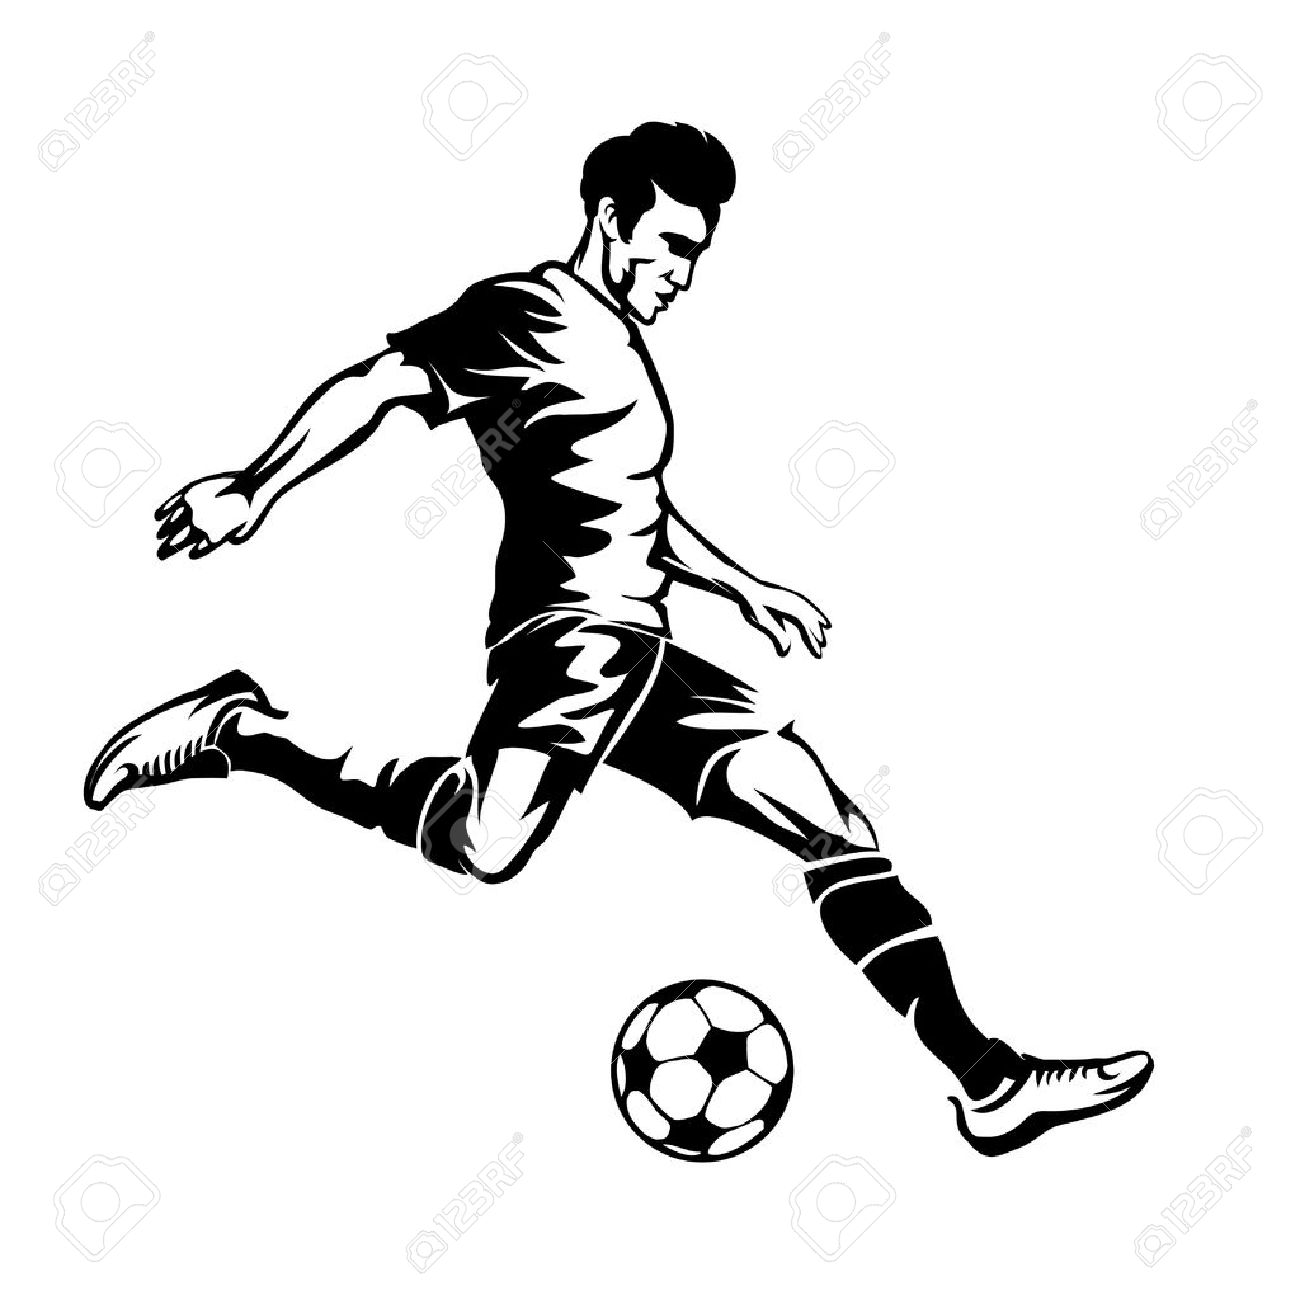 1300x1300 Football Player With Soccer Ball Vector Silhouette. Sport Game